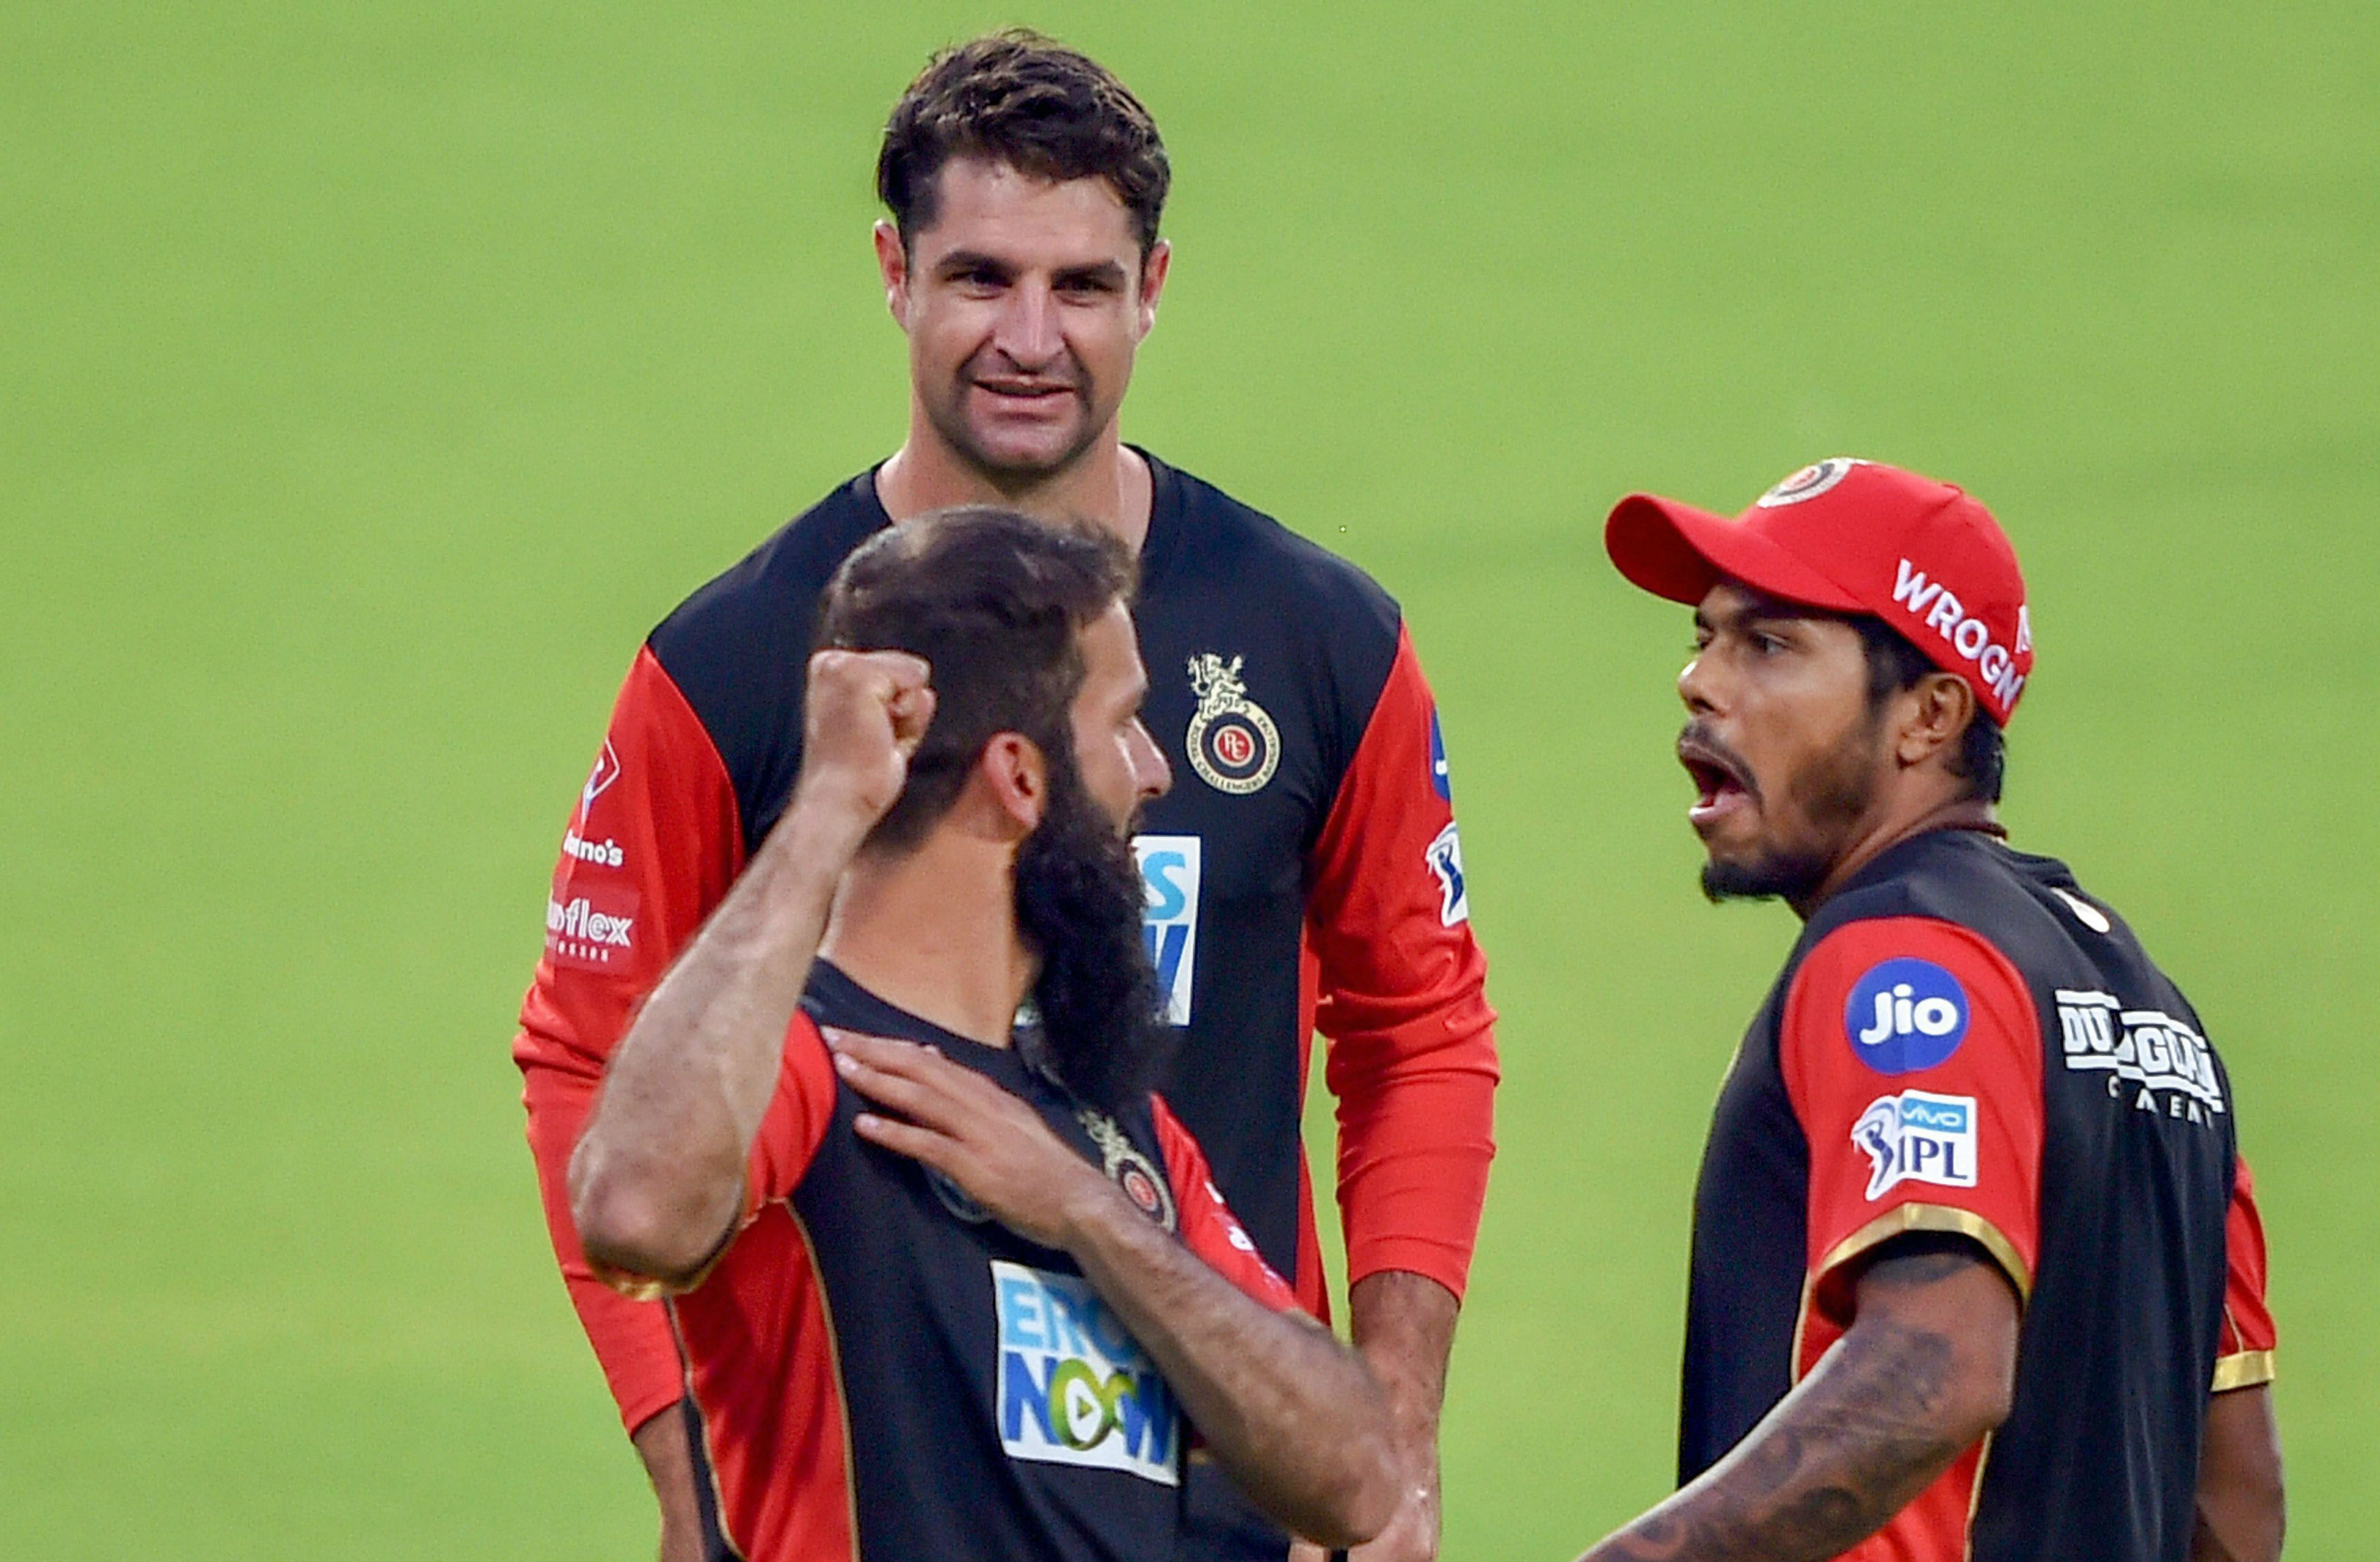 Ipl 2018 Match 51 Rcb Vs Srh Match Review